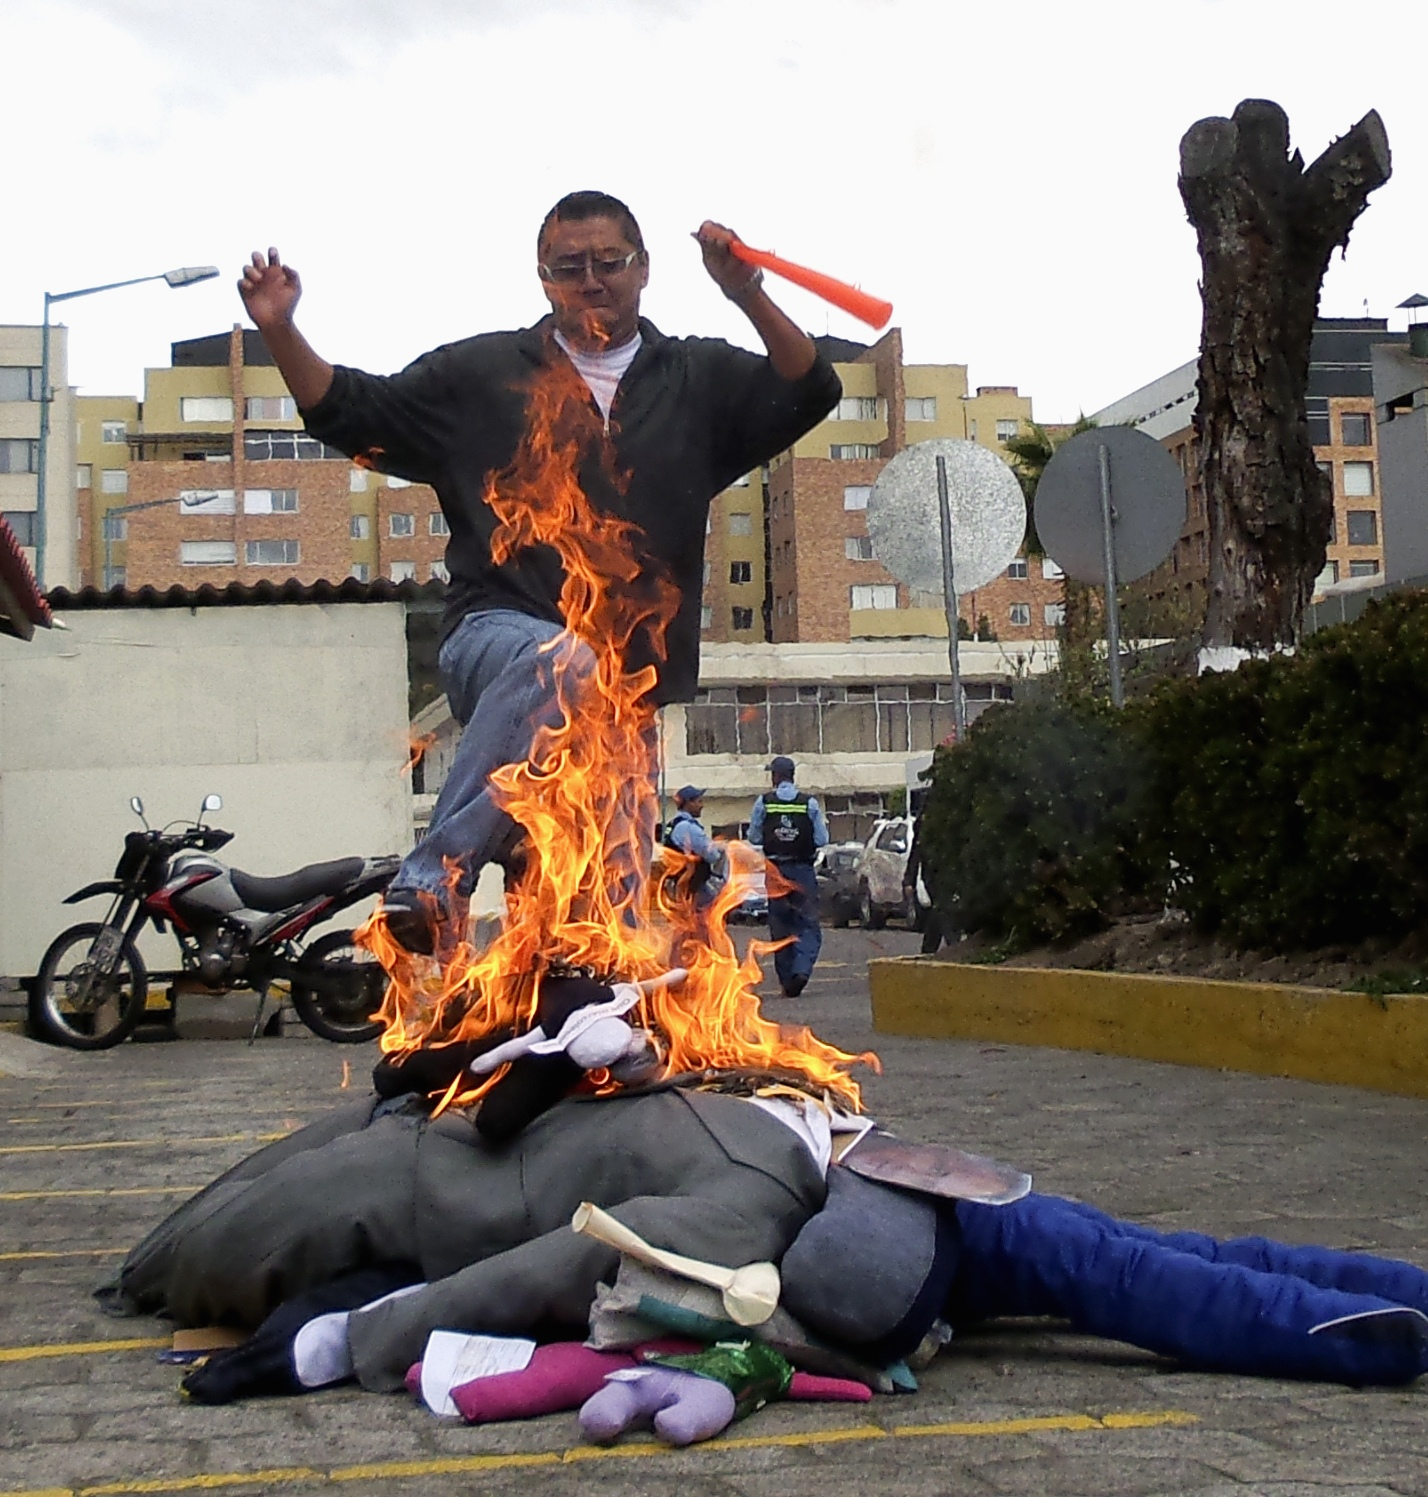 Revelers burn a pile of handmade puppets to kick and jump over, on the streets of Quito